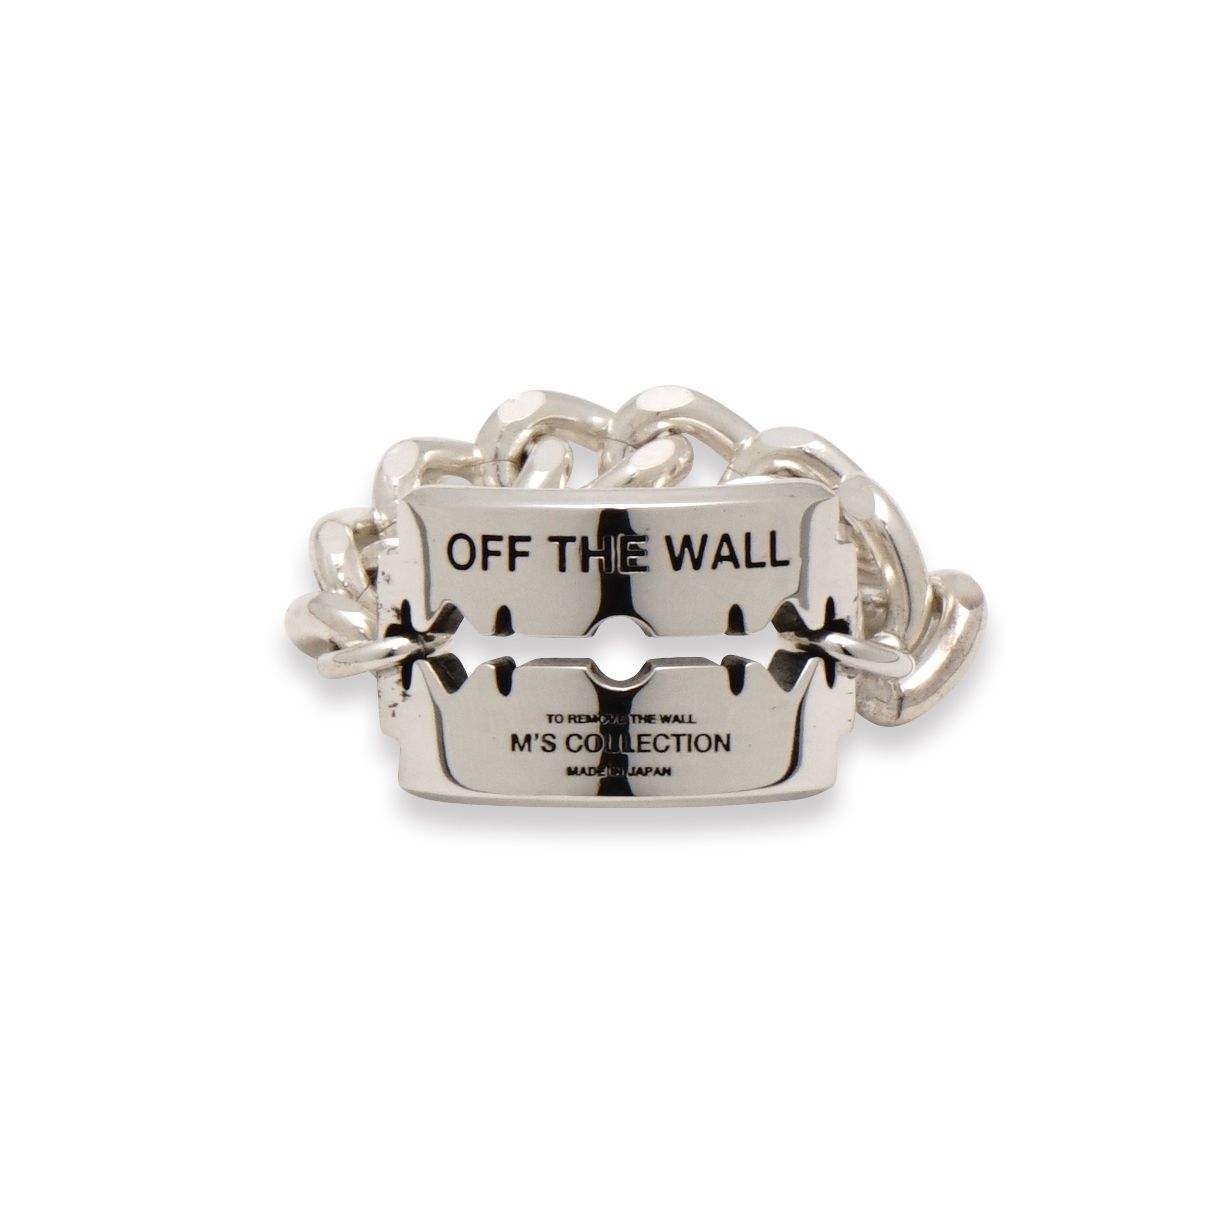 OFF THE WALL RAZOR CHAIN RING